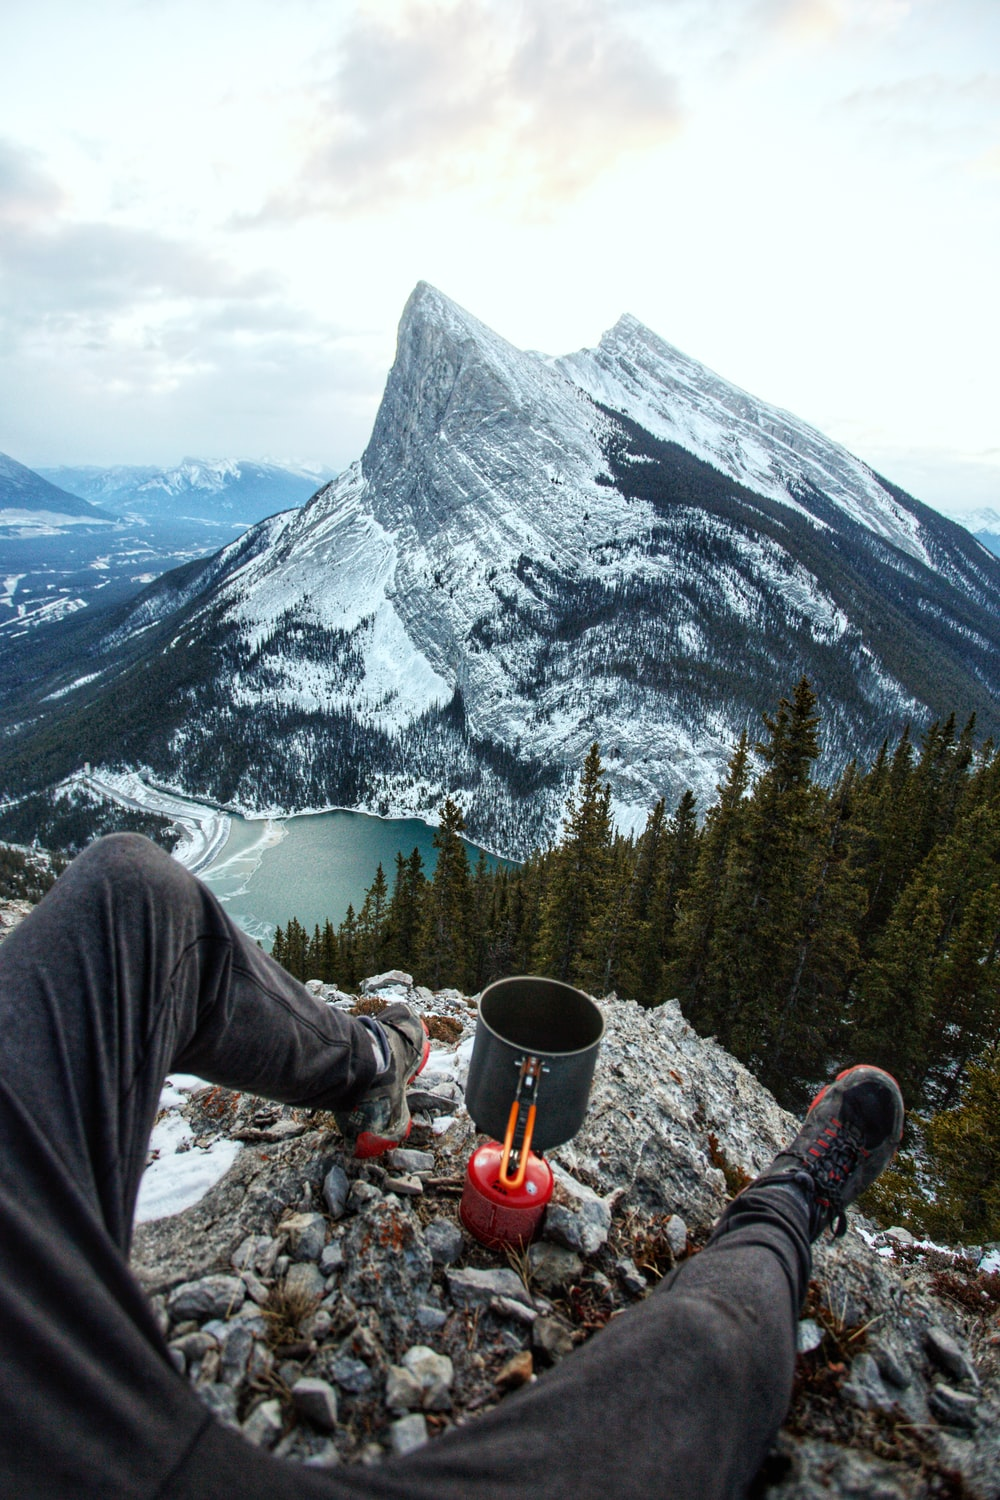 person sitting on edge of mountain during daytime